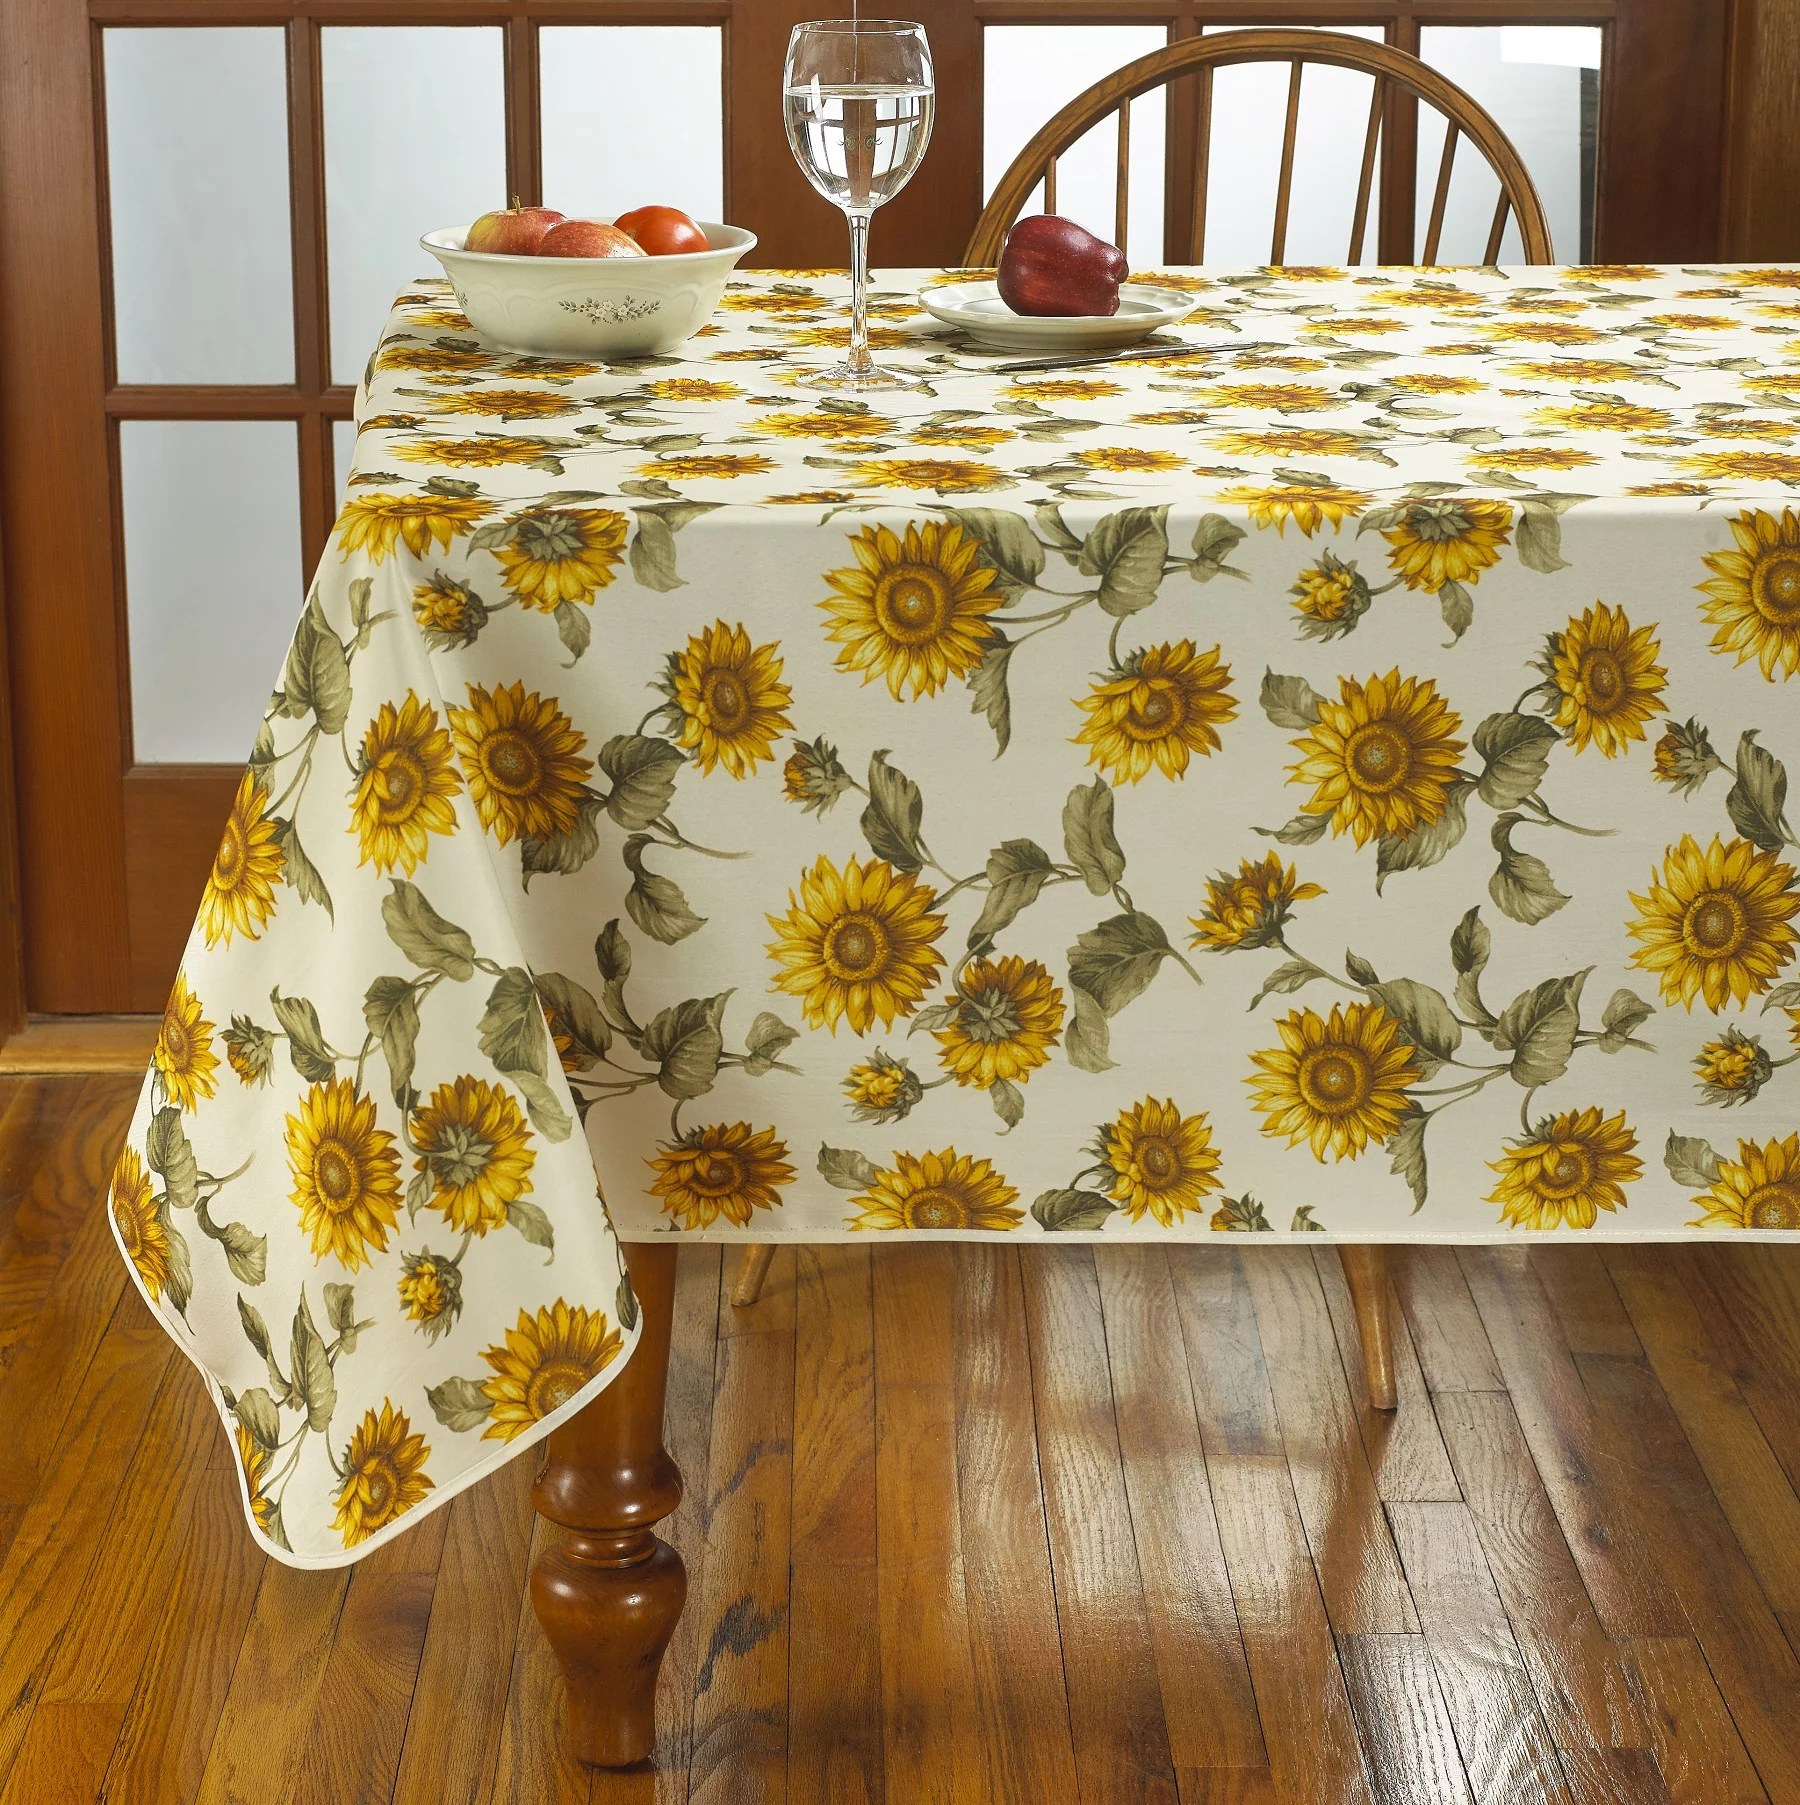 Classic Euro Sunflower Tablecloth With Large Sunflowers